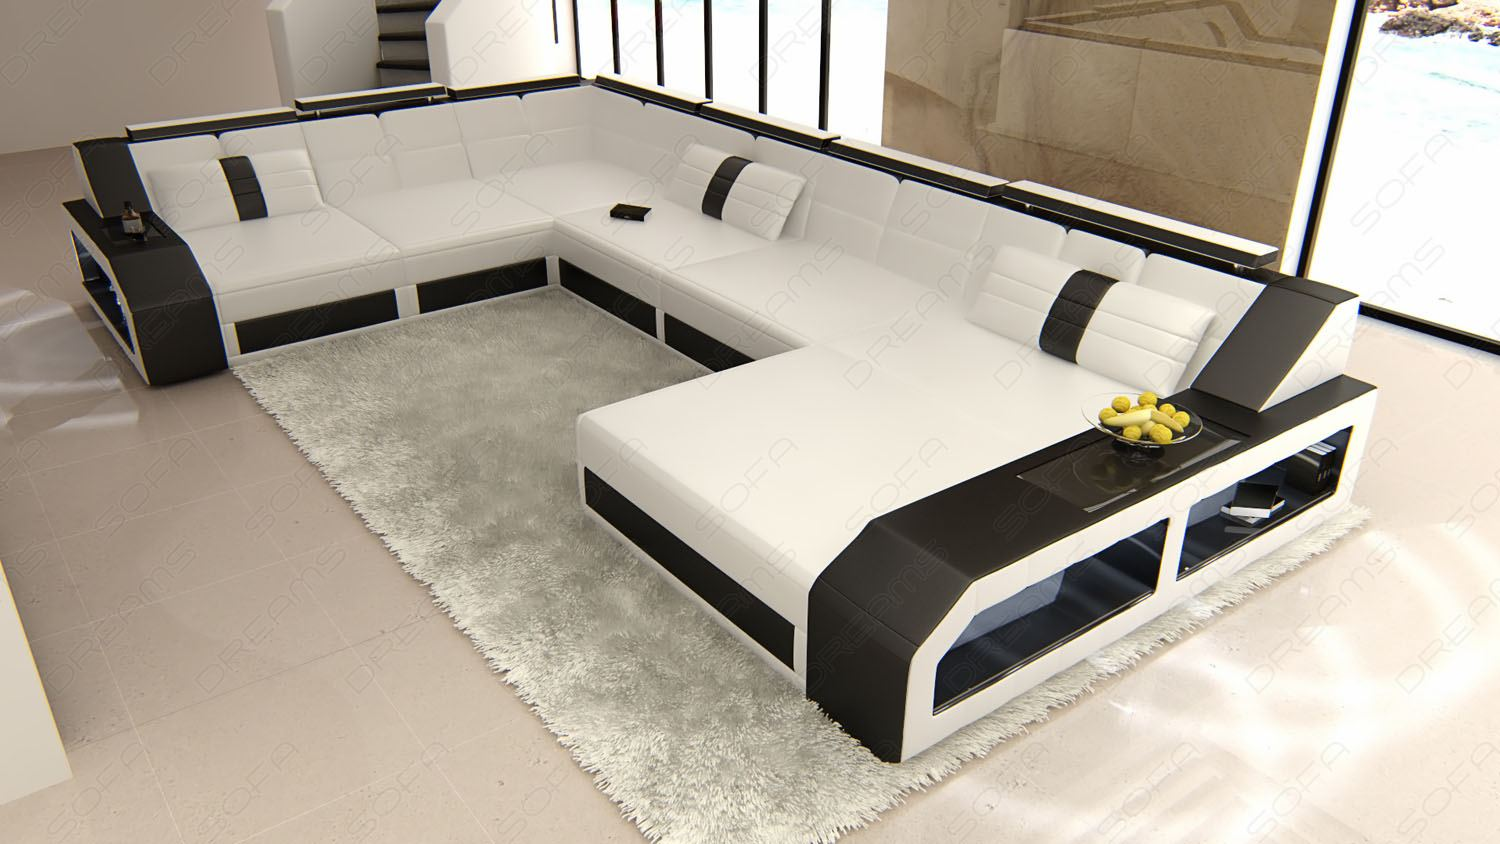 xxl leder wohnlandschaft matera u form designercouch beleuchtung ebay. Black Bedroom Furniture Sets. Home Design Ideas